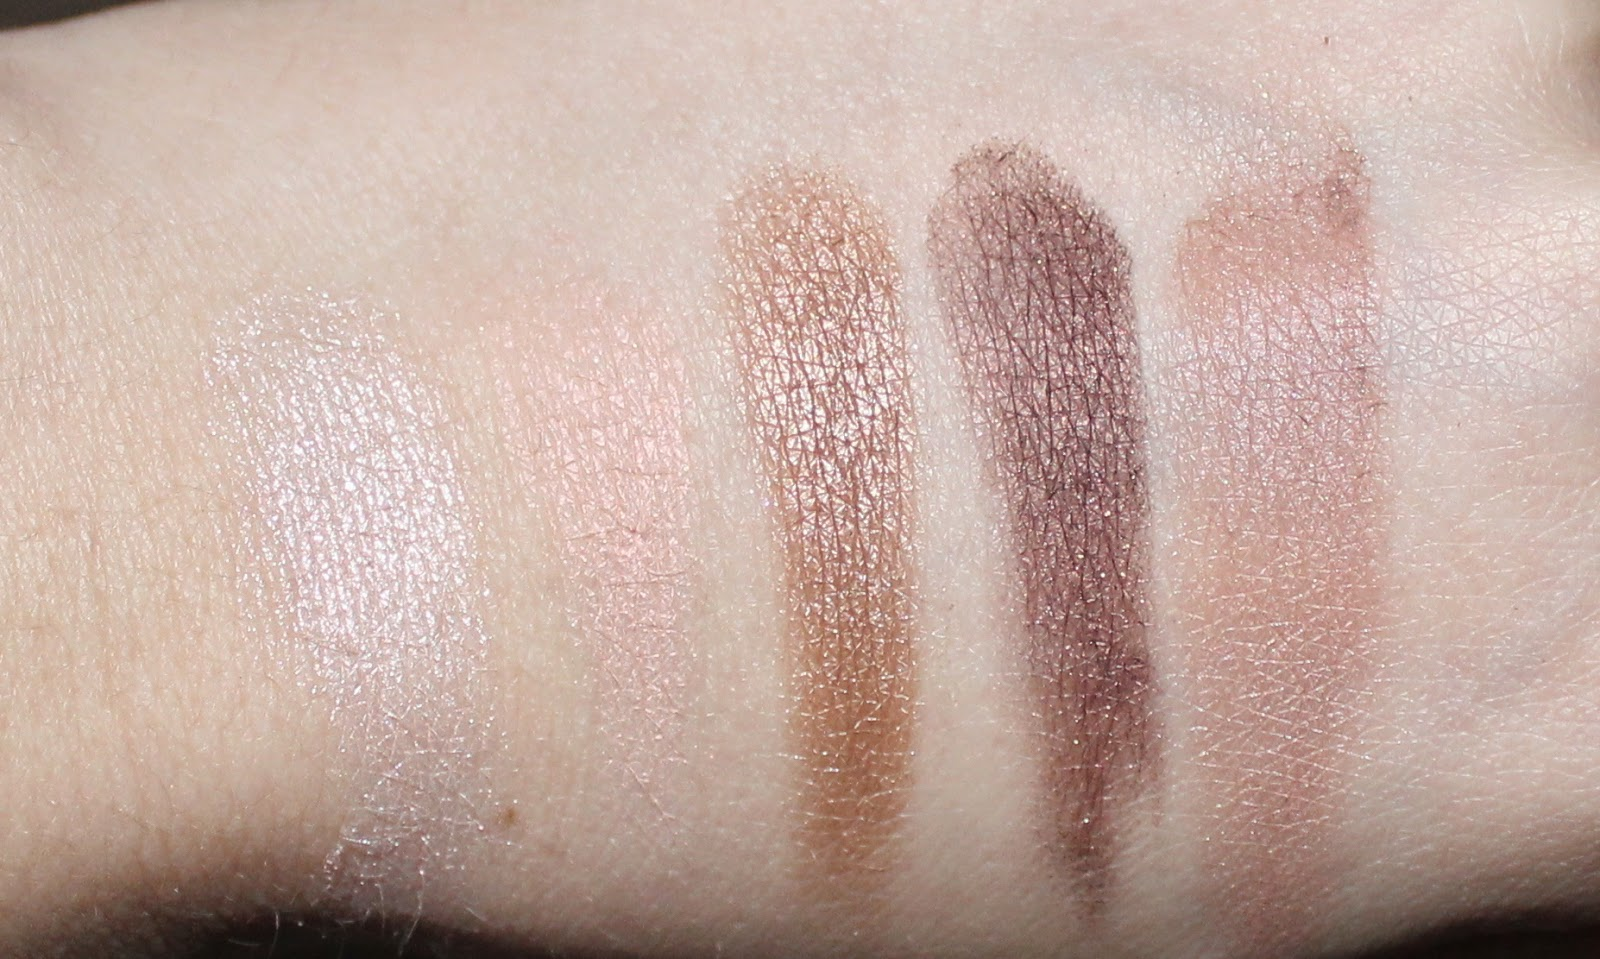 Dior 5 Couleurs Eyeshadow Palette in Ambre Nuit Swatches